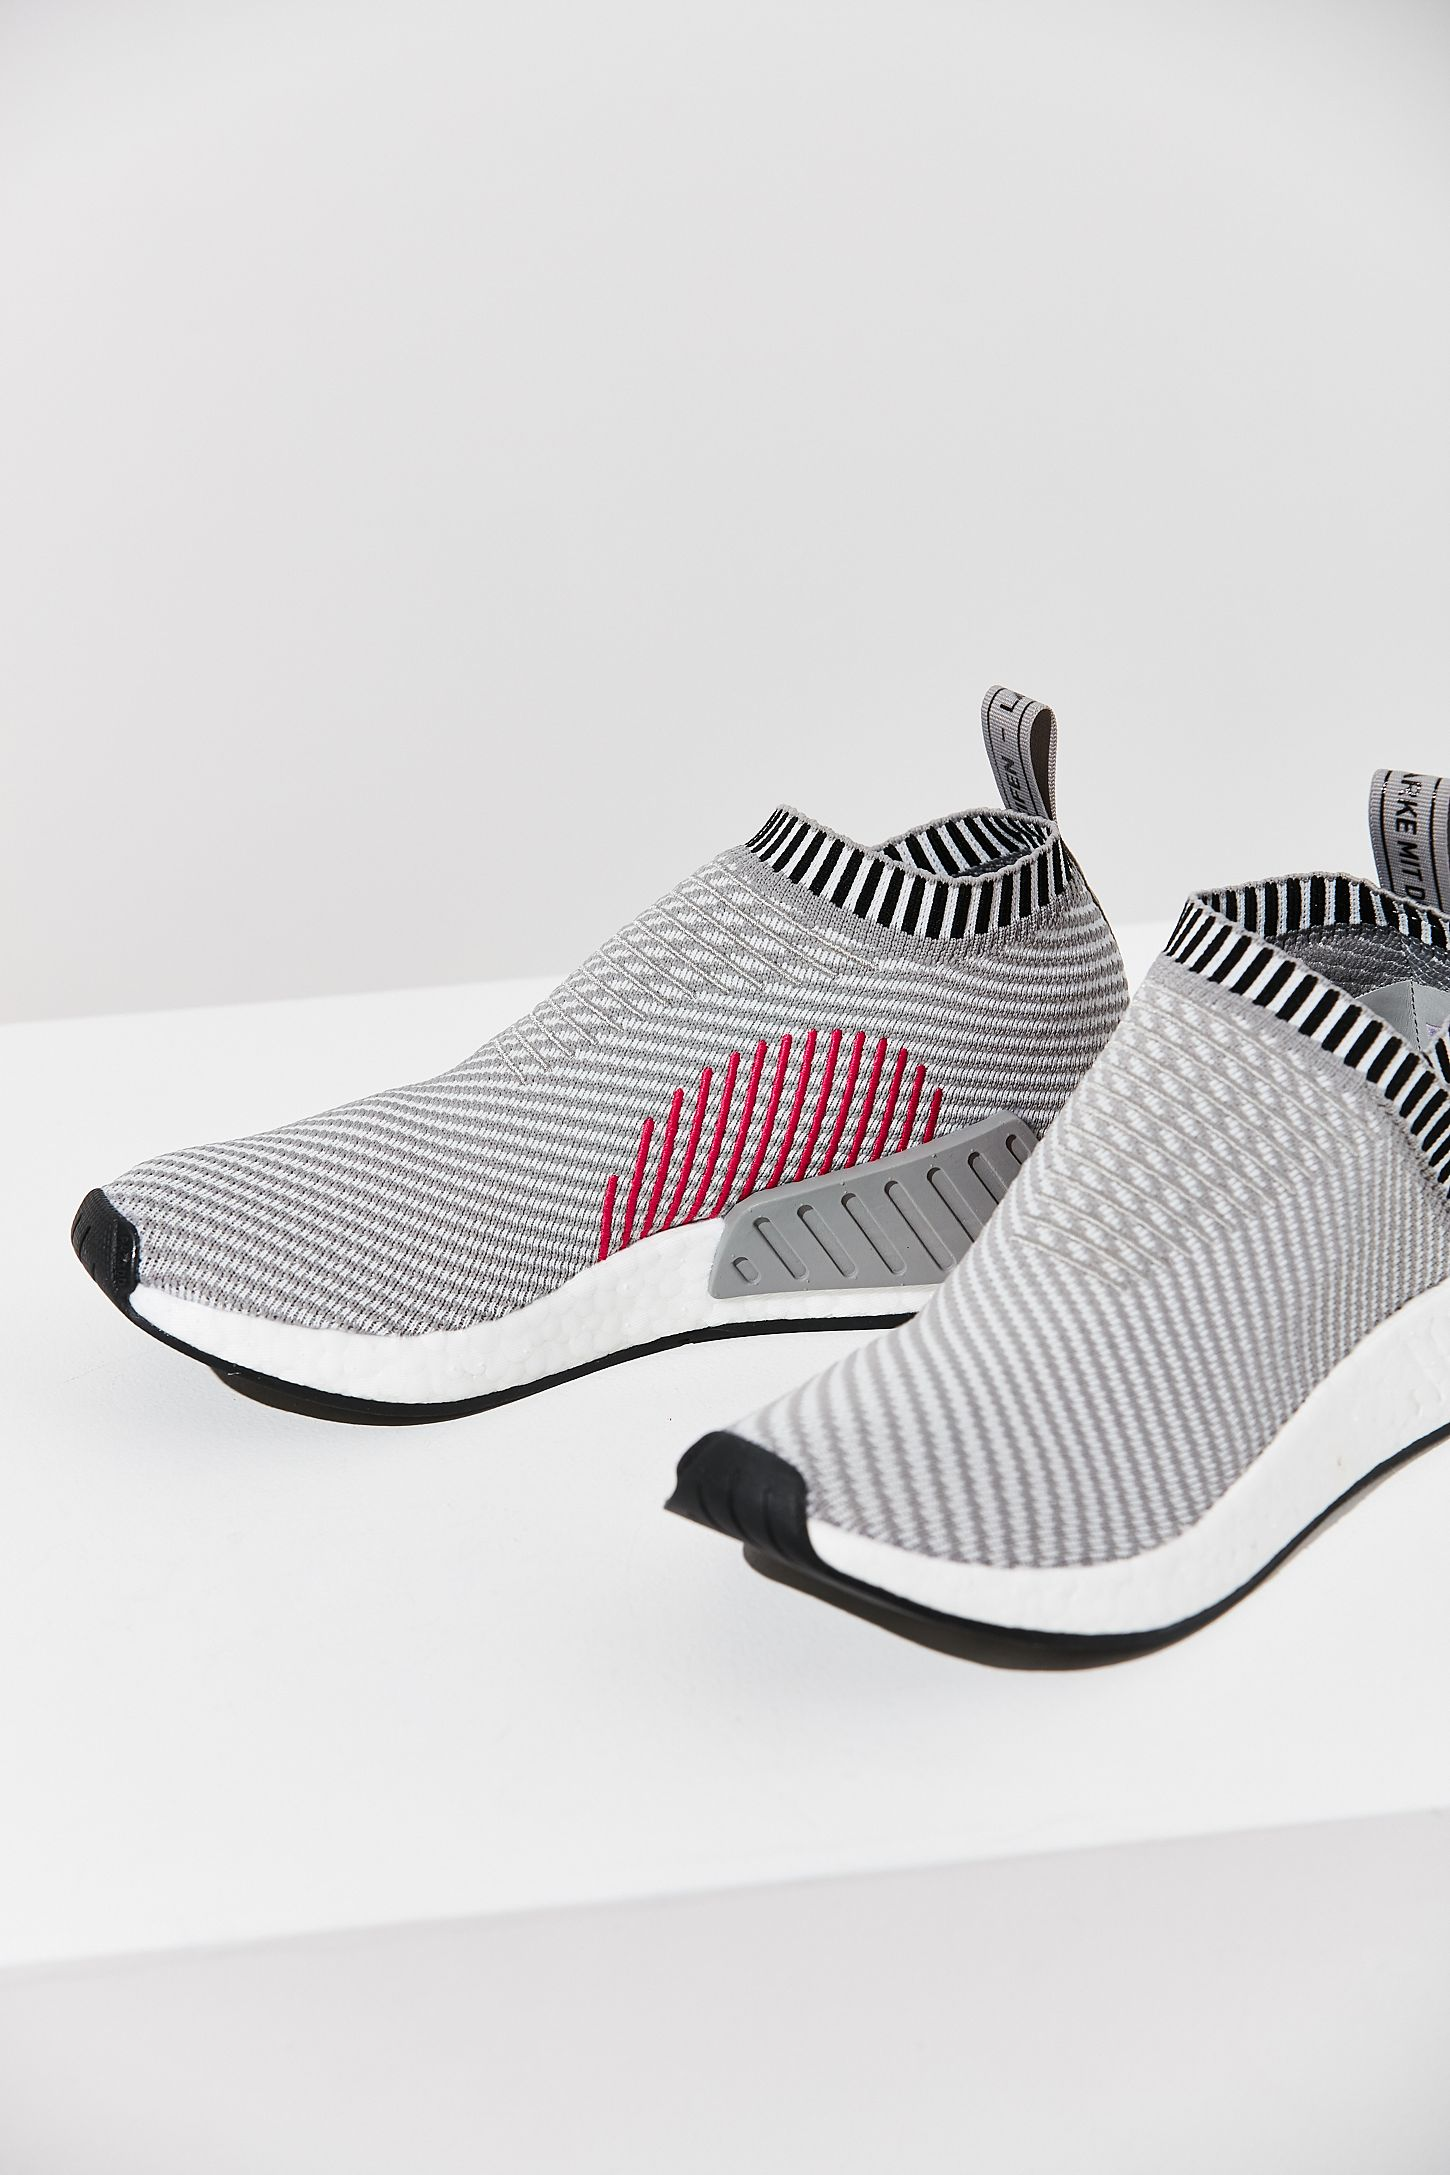 3bb941c90421f adidas Originals NMD CS2 Primeknit Sneaker. Tap image to zoom. Hover to  zoom. Double Tap to Zoom